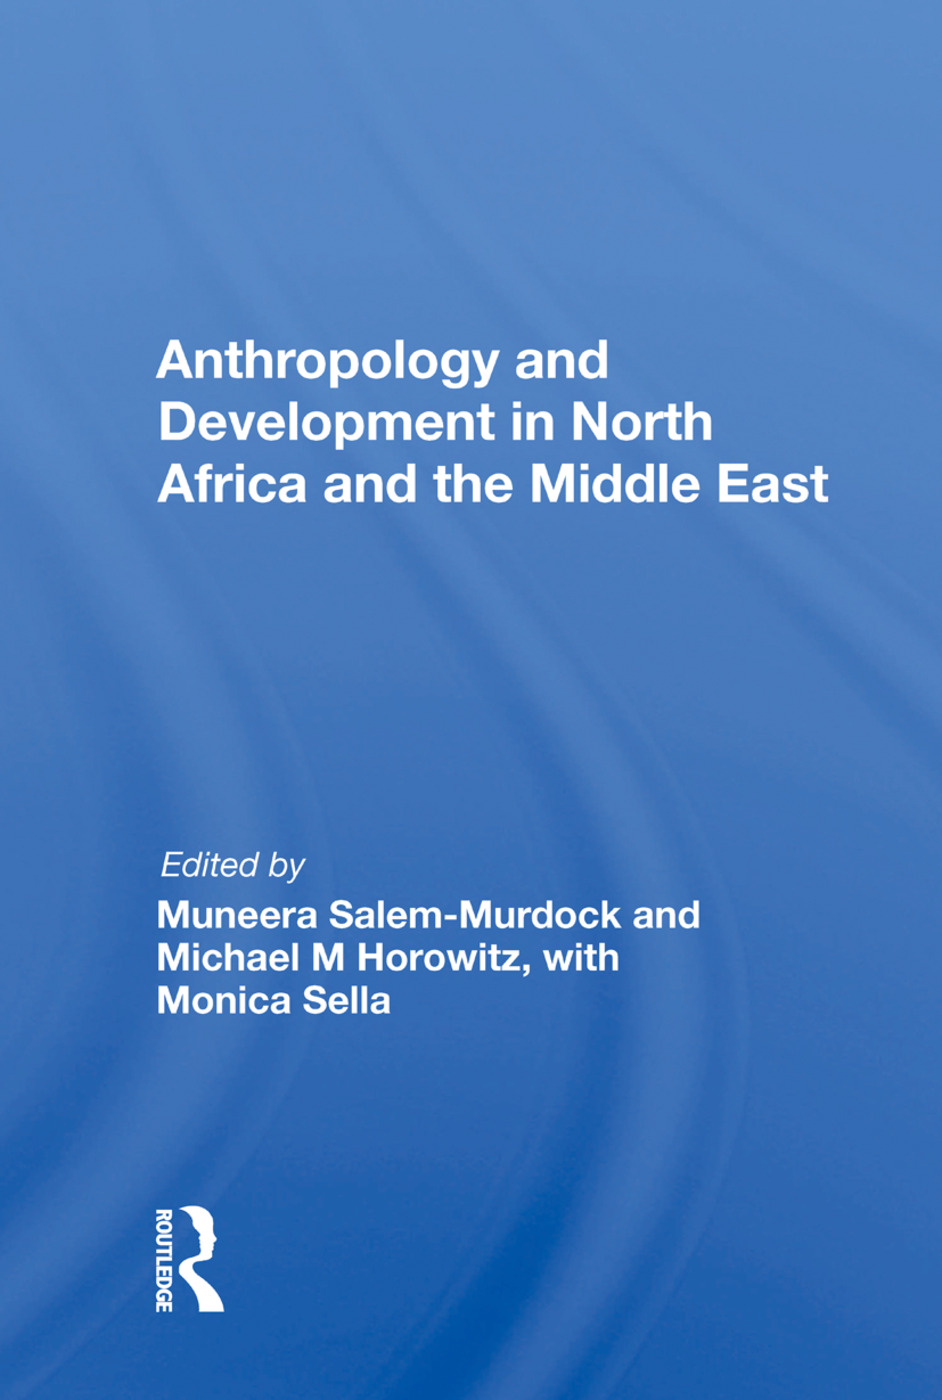 Anthropology and Development in North Africa and the Middle East